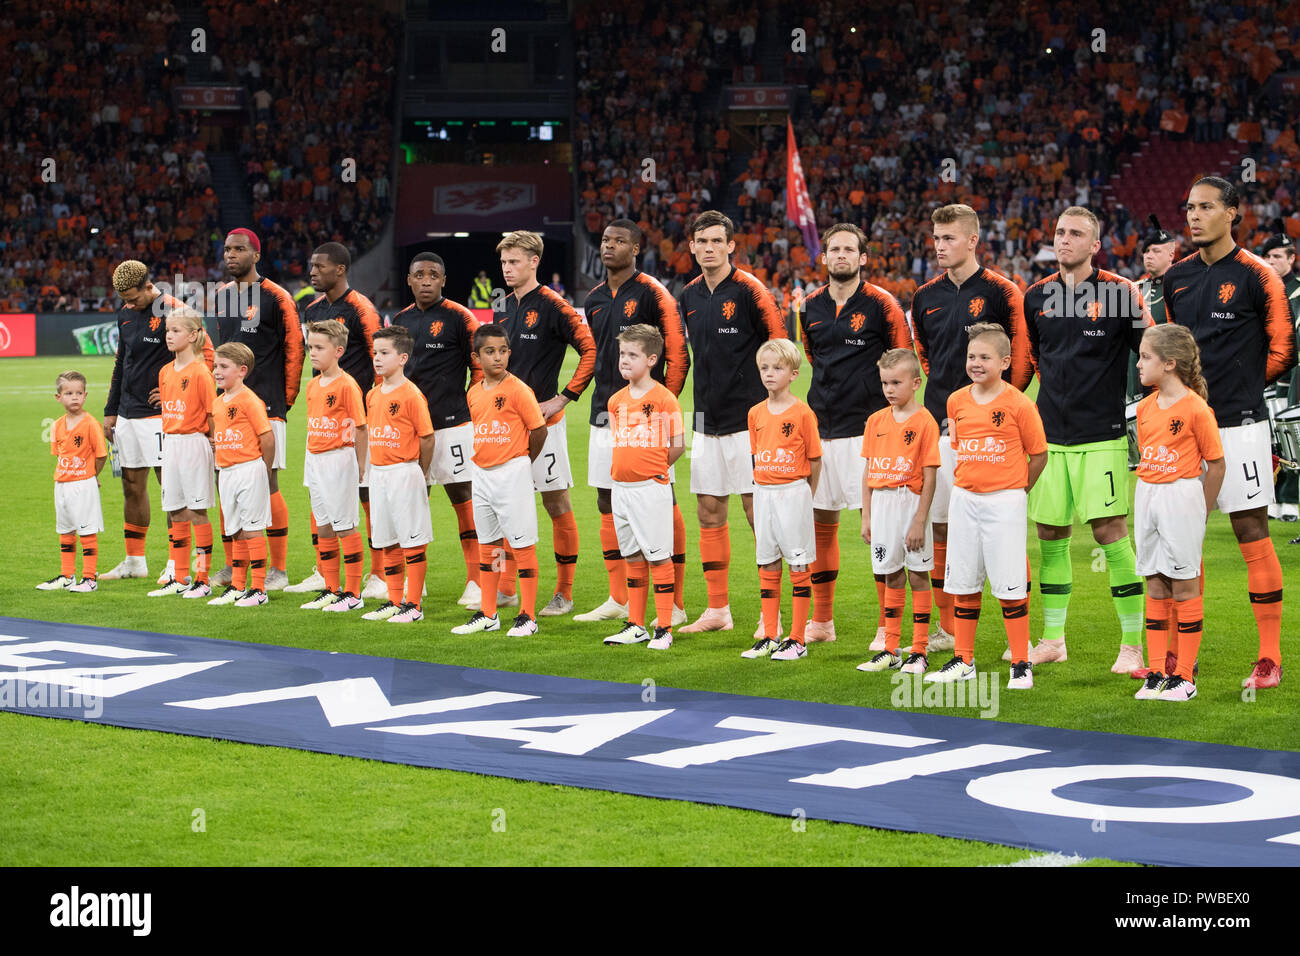 The Dutch players will be present on the pitch, presentation